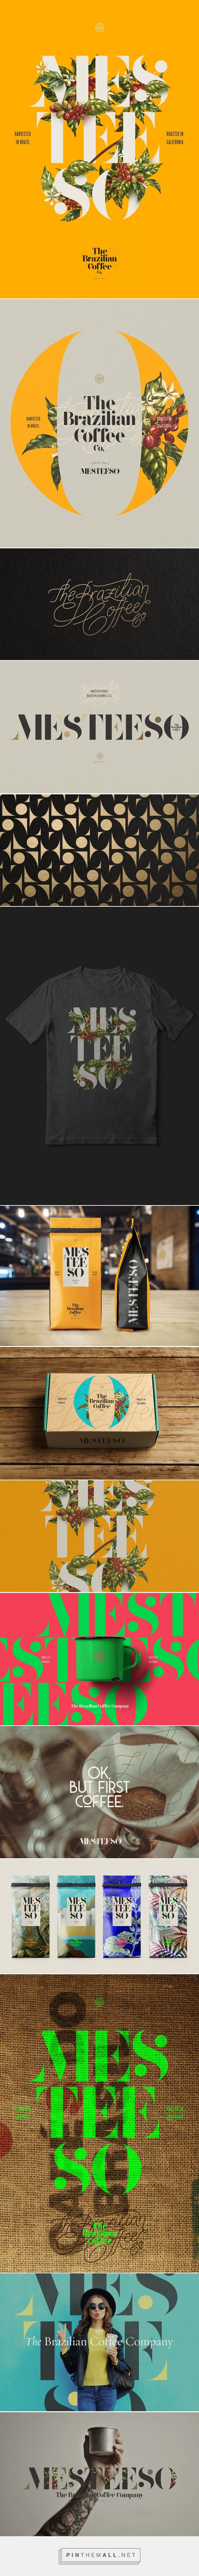 The Brazilian Coffee Co. | Mesteeso on Behance - created via https://pinthemall.net